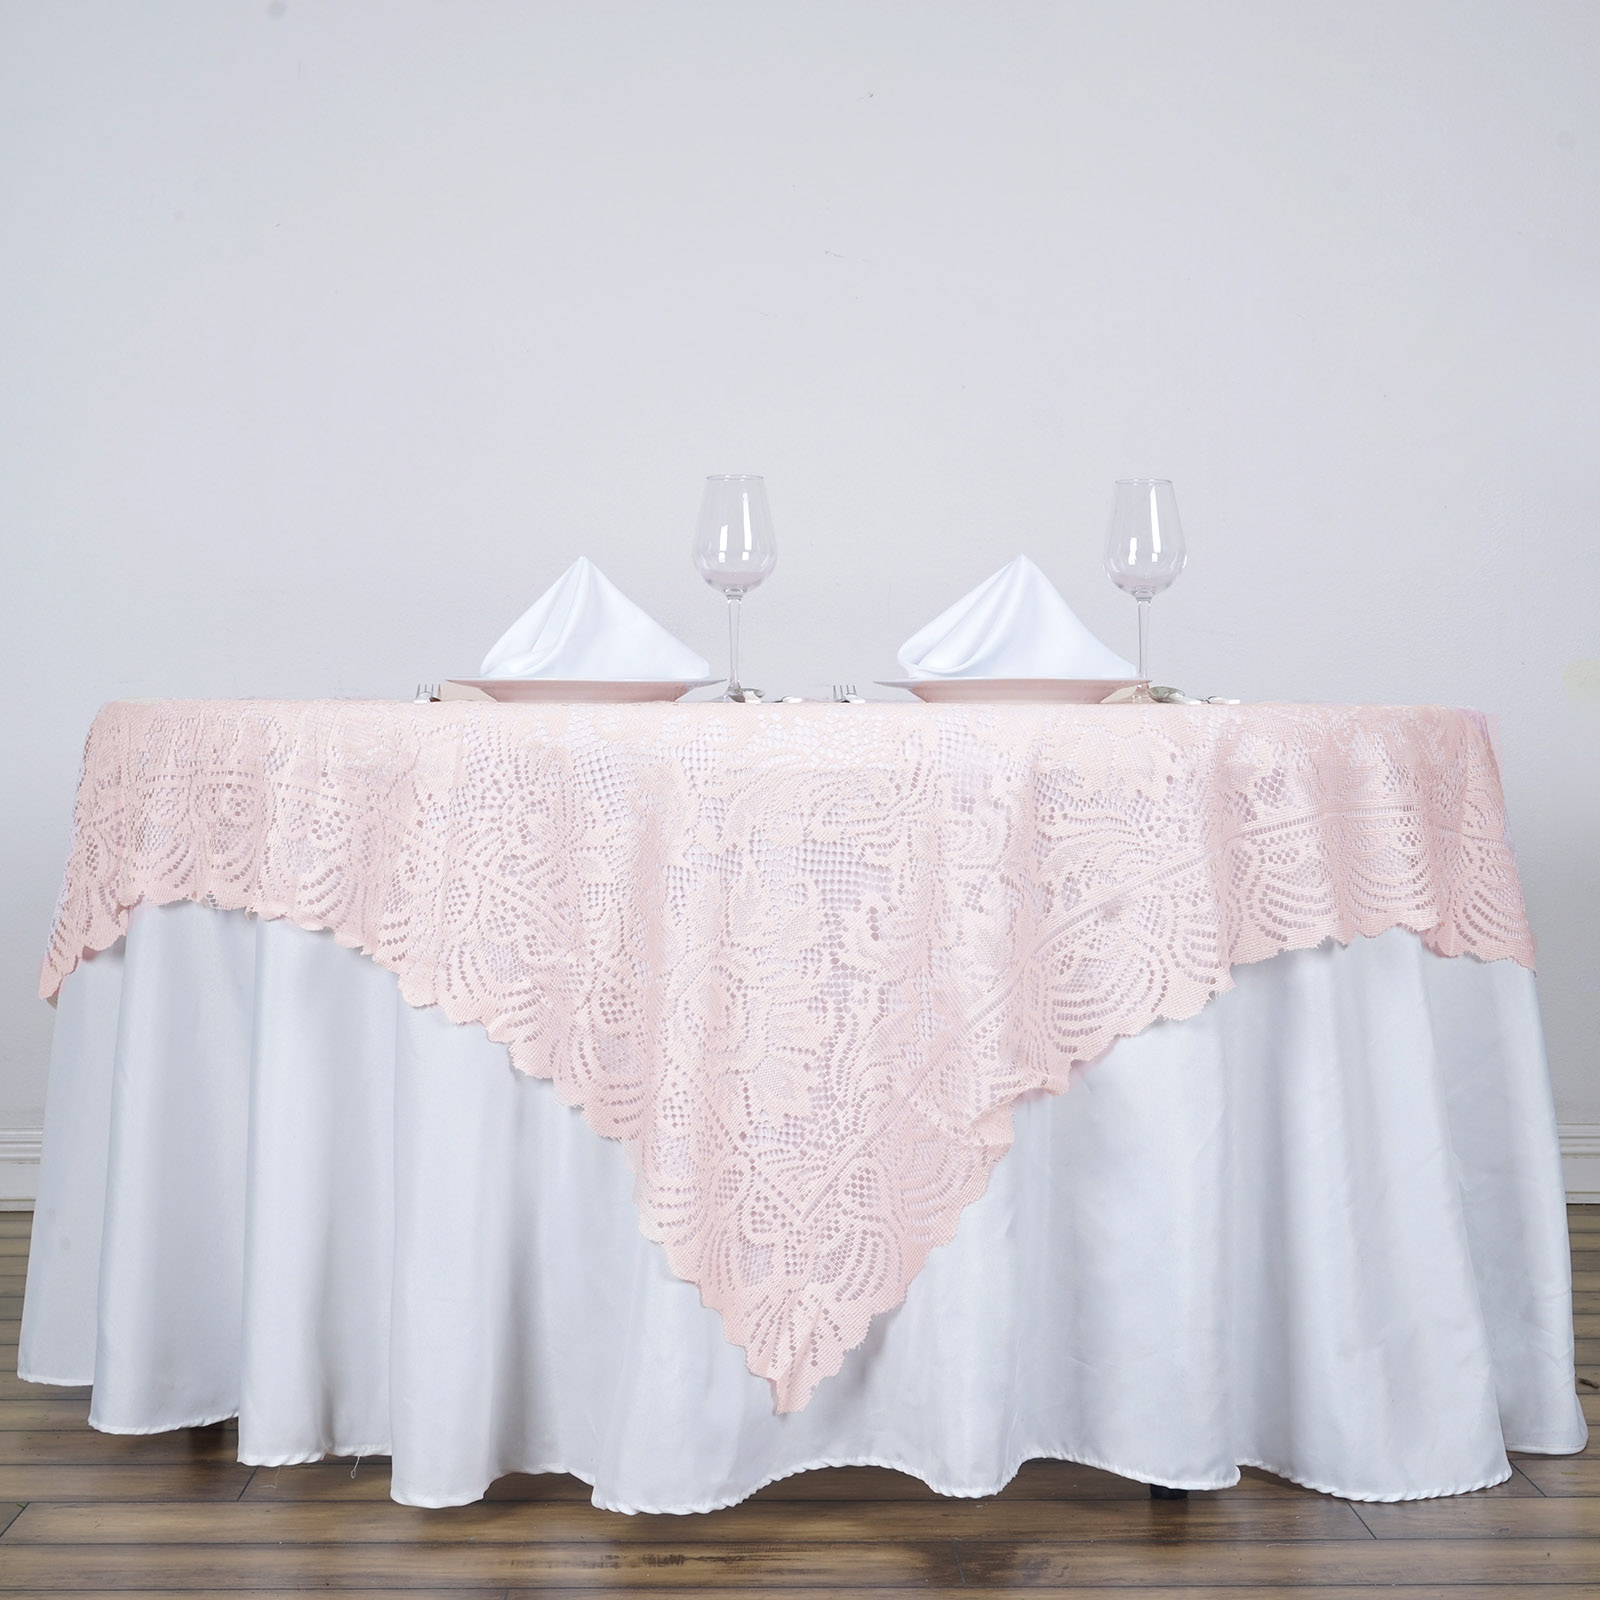 """BalsaCircle 72"""" x 72"""" Square Lace Table Overlays - Wedding Party Reception Catering Linens Dinner Banquet Event Decorations"""